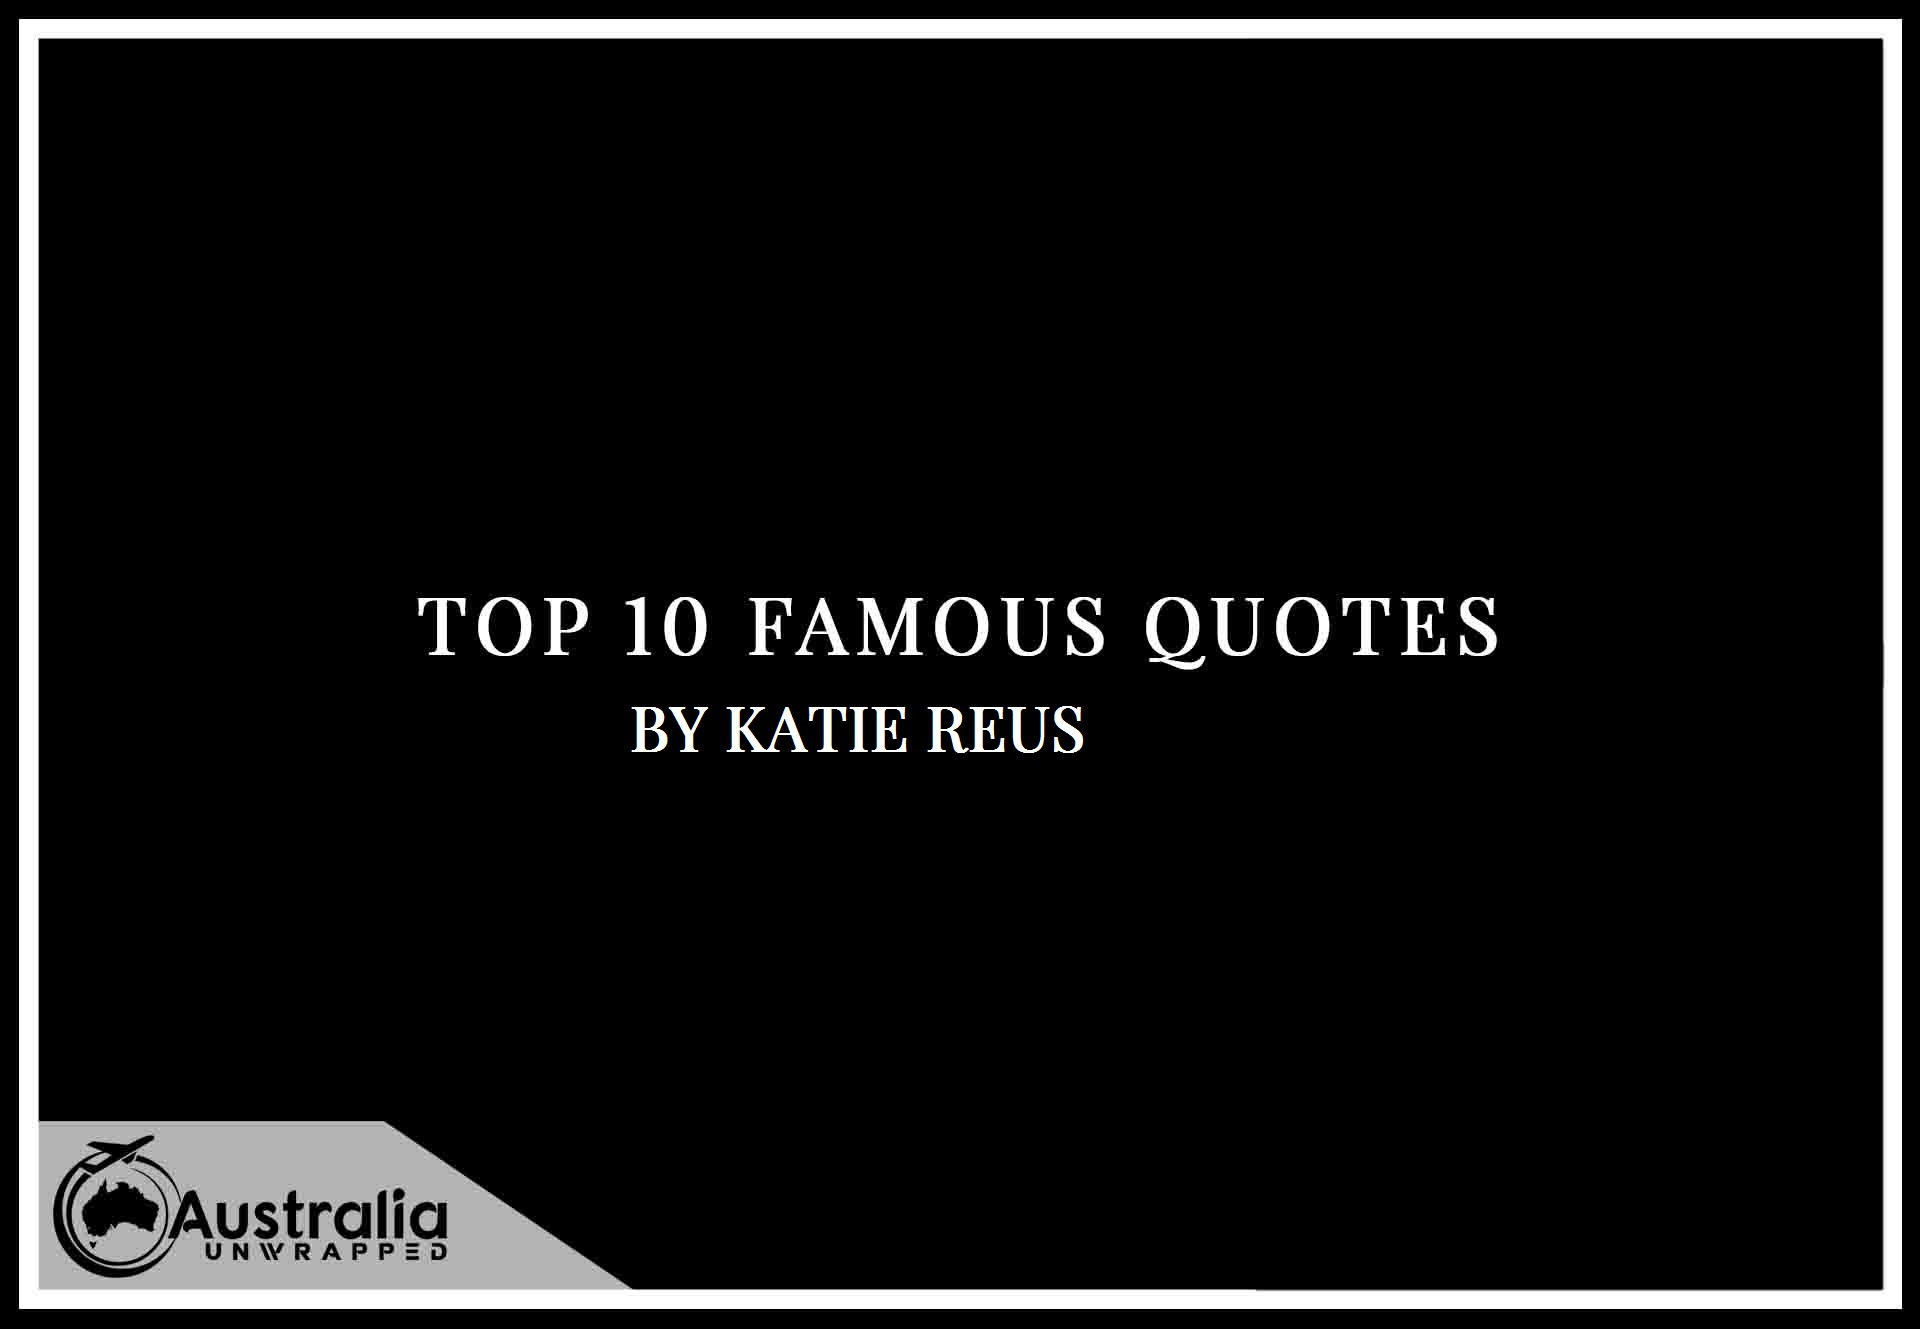 Katie Reus's Top 10 Popular and Famous Quotes